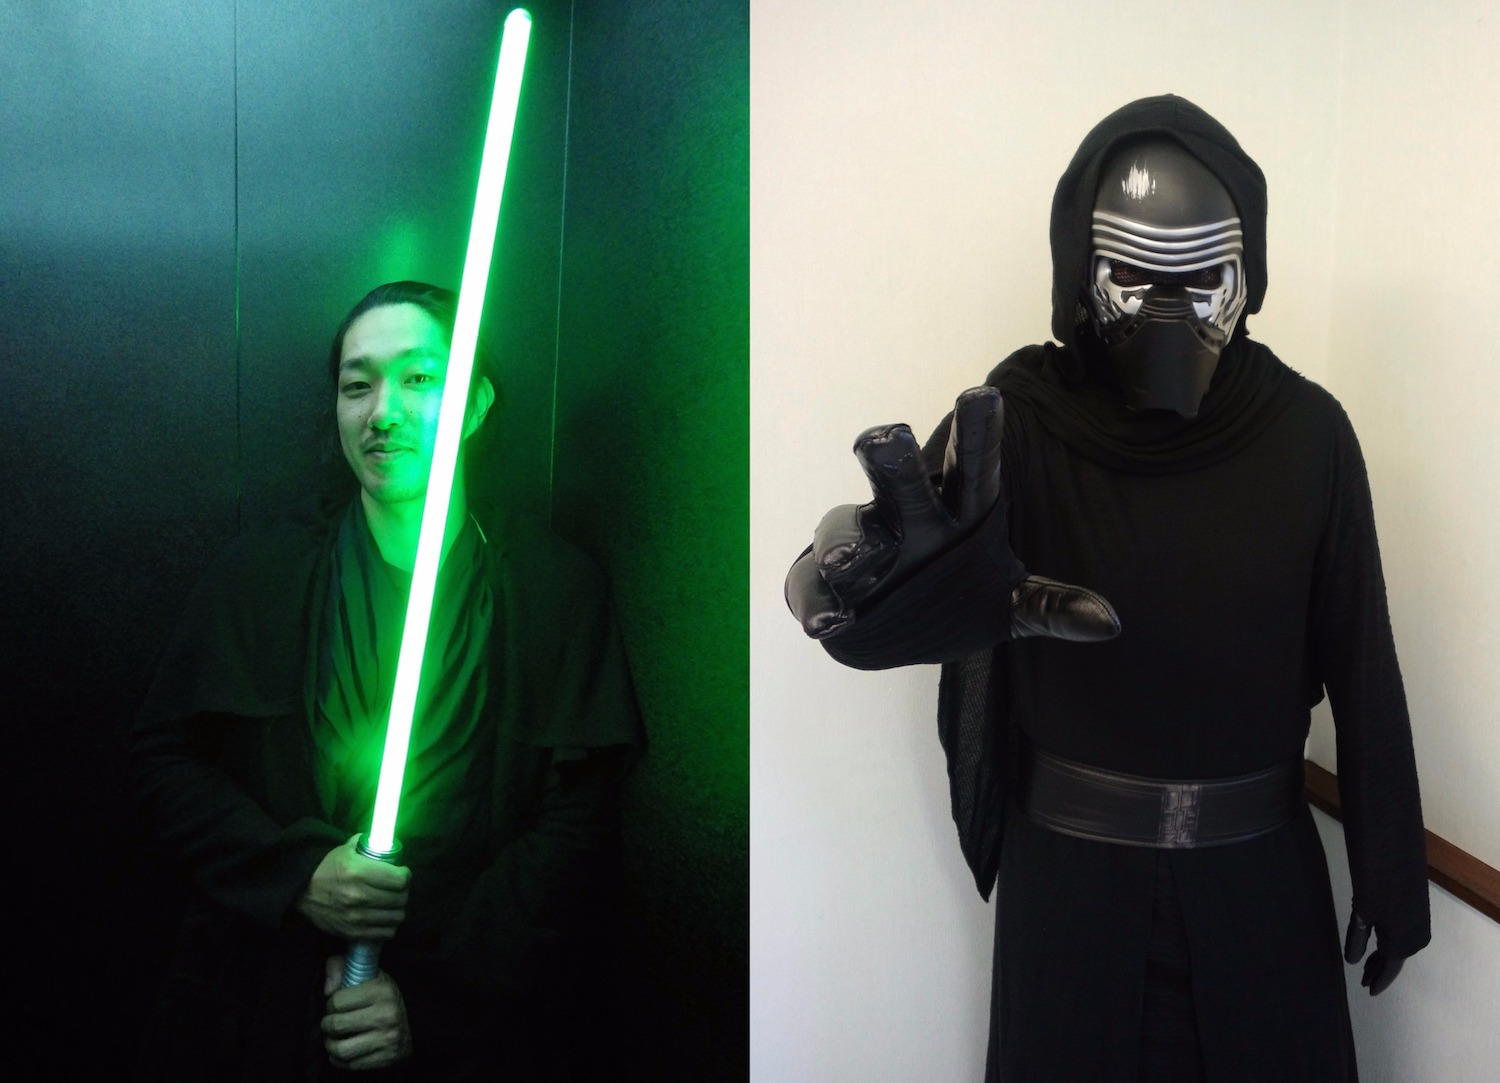 Star Wars cosplayers in Tokyo.